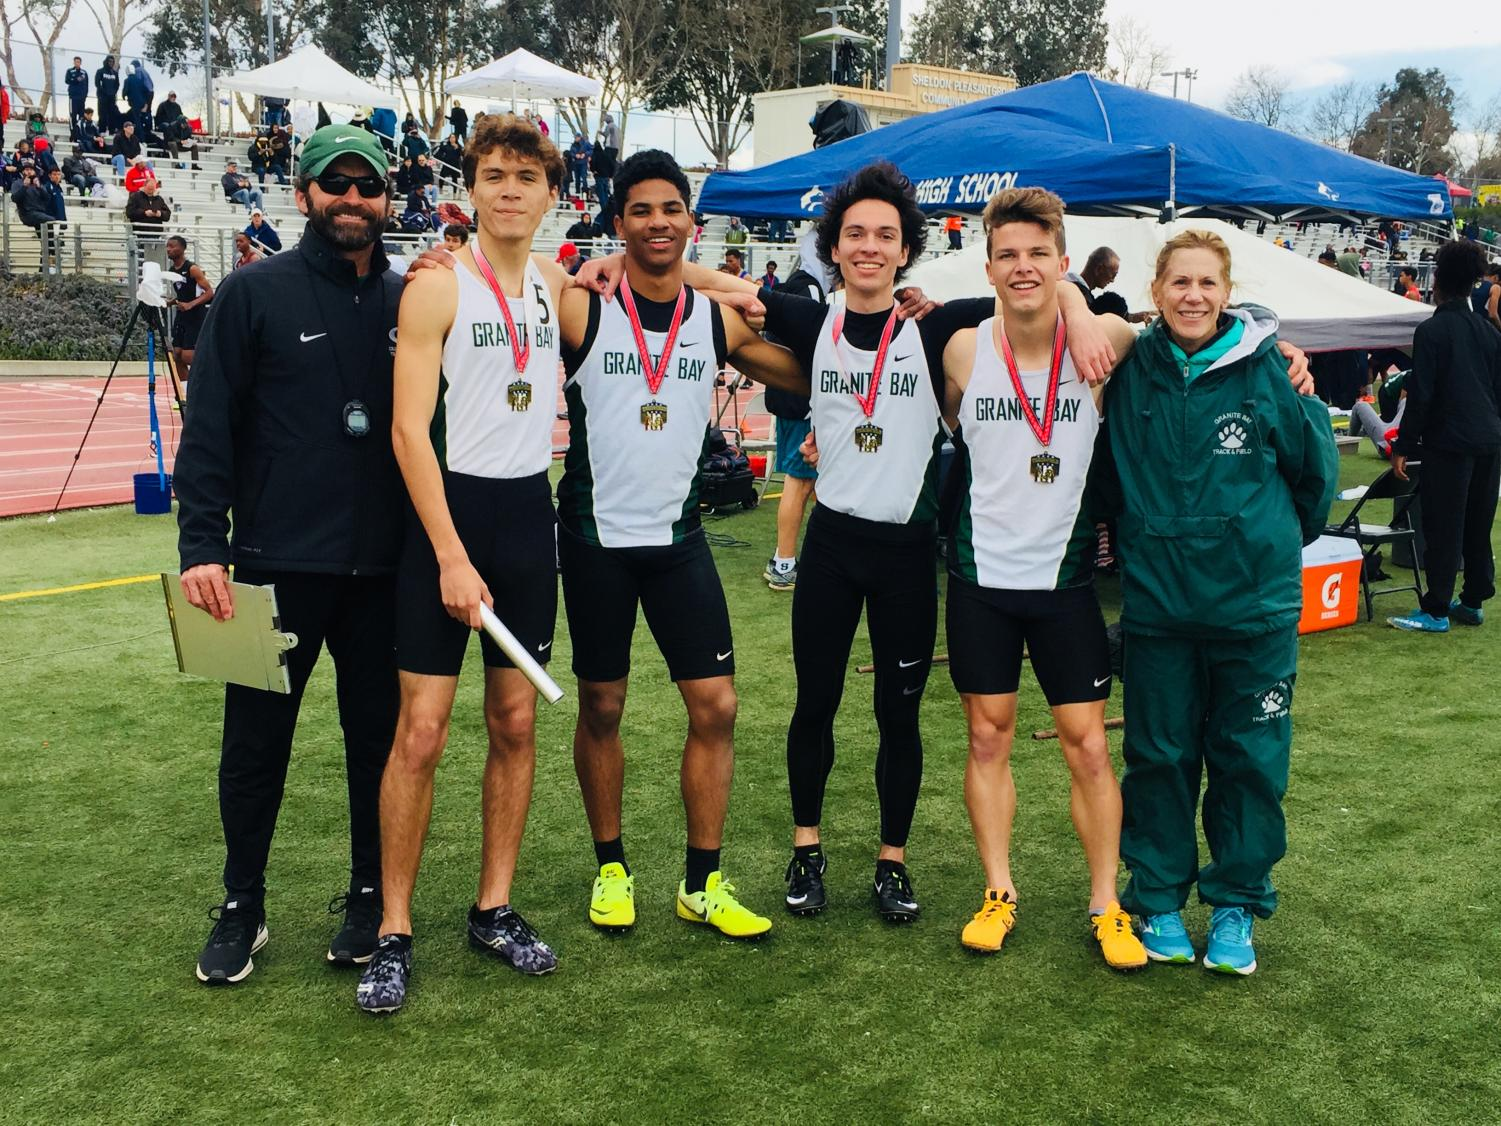 The Granite Bay High School Varsity Boys' 4x400 relay team celebrate their first place finish at the Sheldon Invitational and hope to continue their road to state.